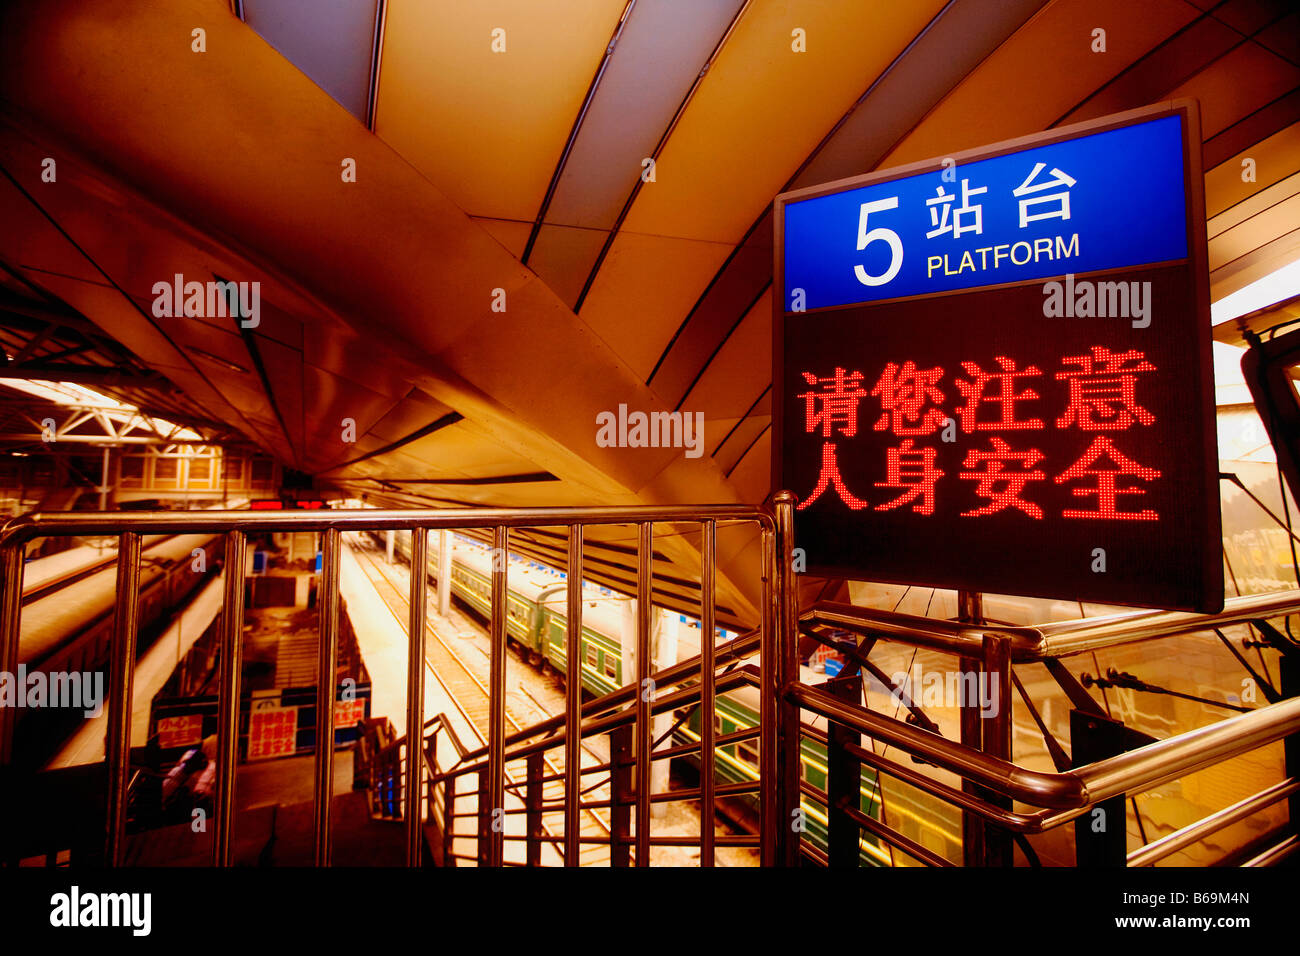 Information board at the railway station, Beijing Railway Station, Beijing, China - Stock Image